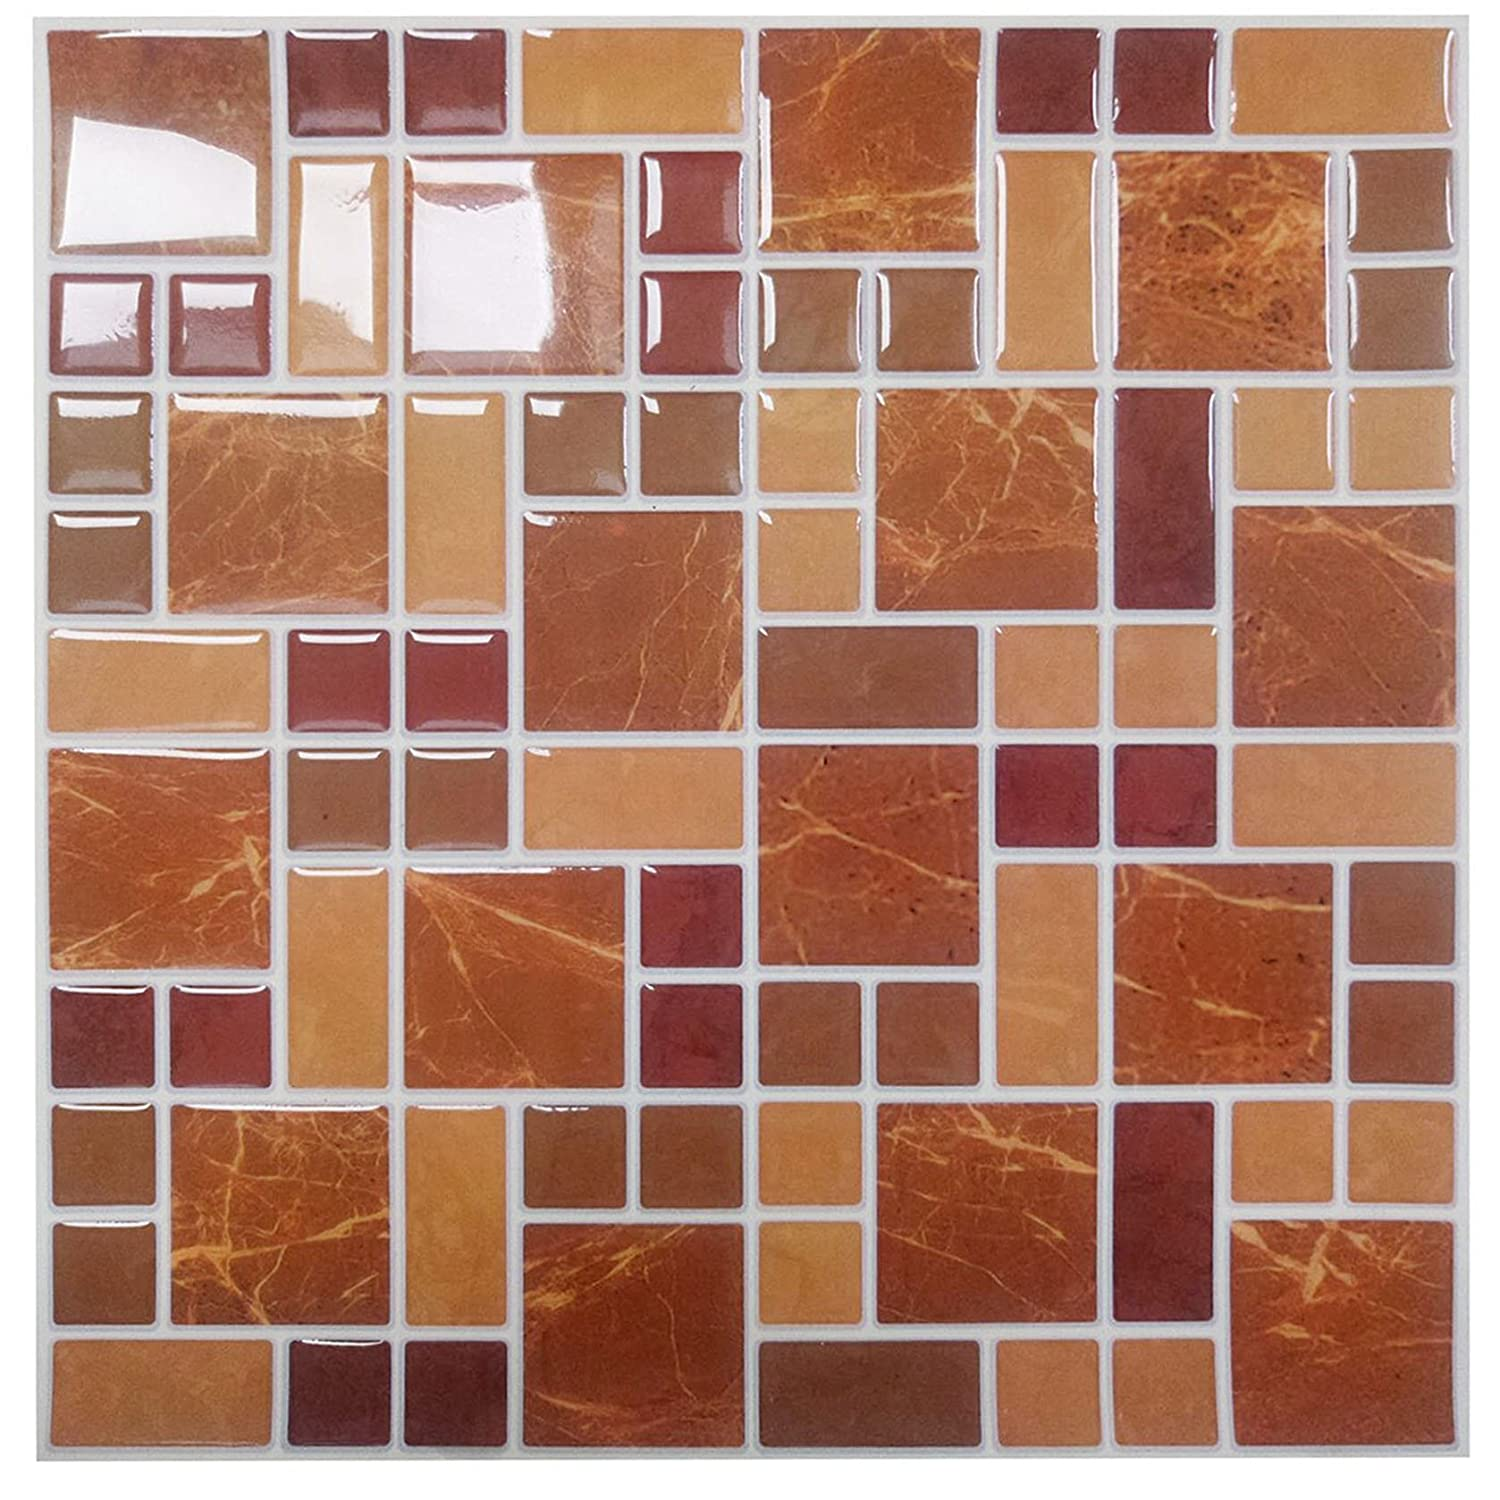 Remarkable Premium Anti-mold Peel and Stick Wall Tiles in Remarkabel Vinyl(10 tiles)